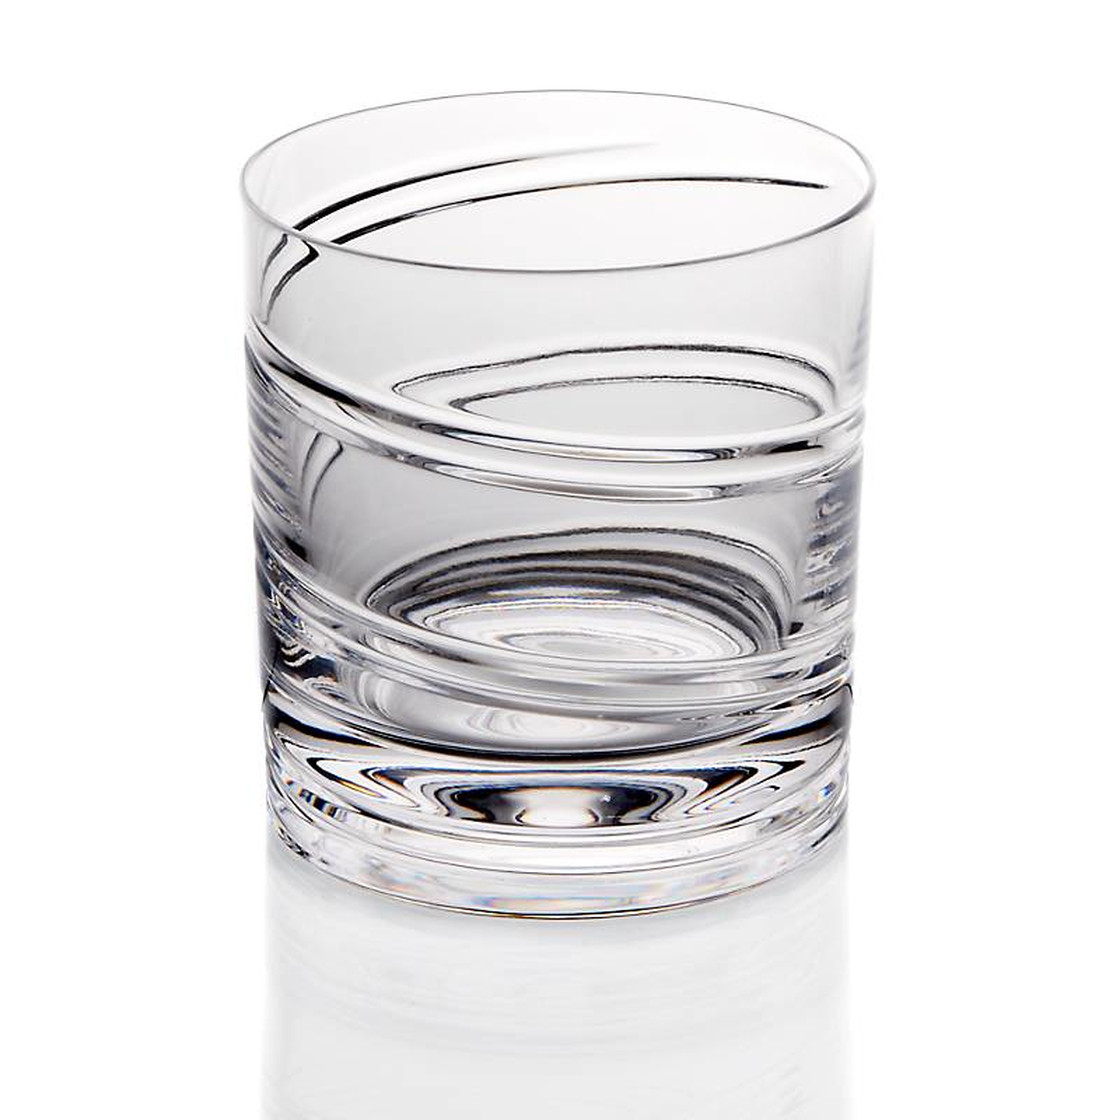 Crystal Whisky Glass Nr 7 Transparent Lead Crystal